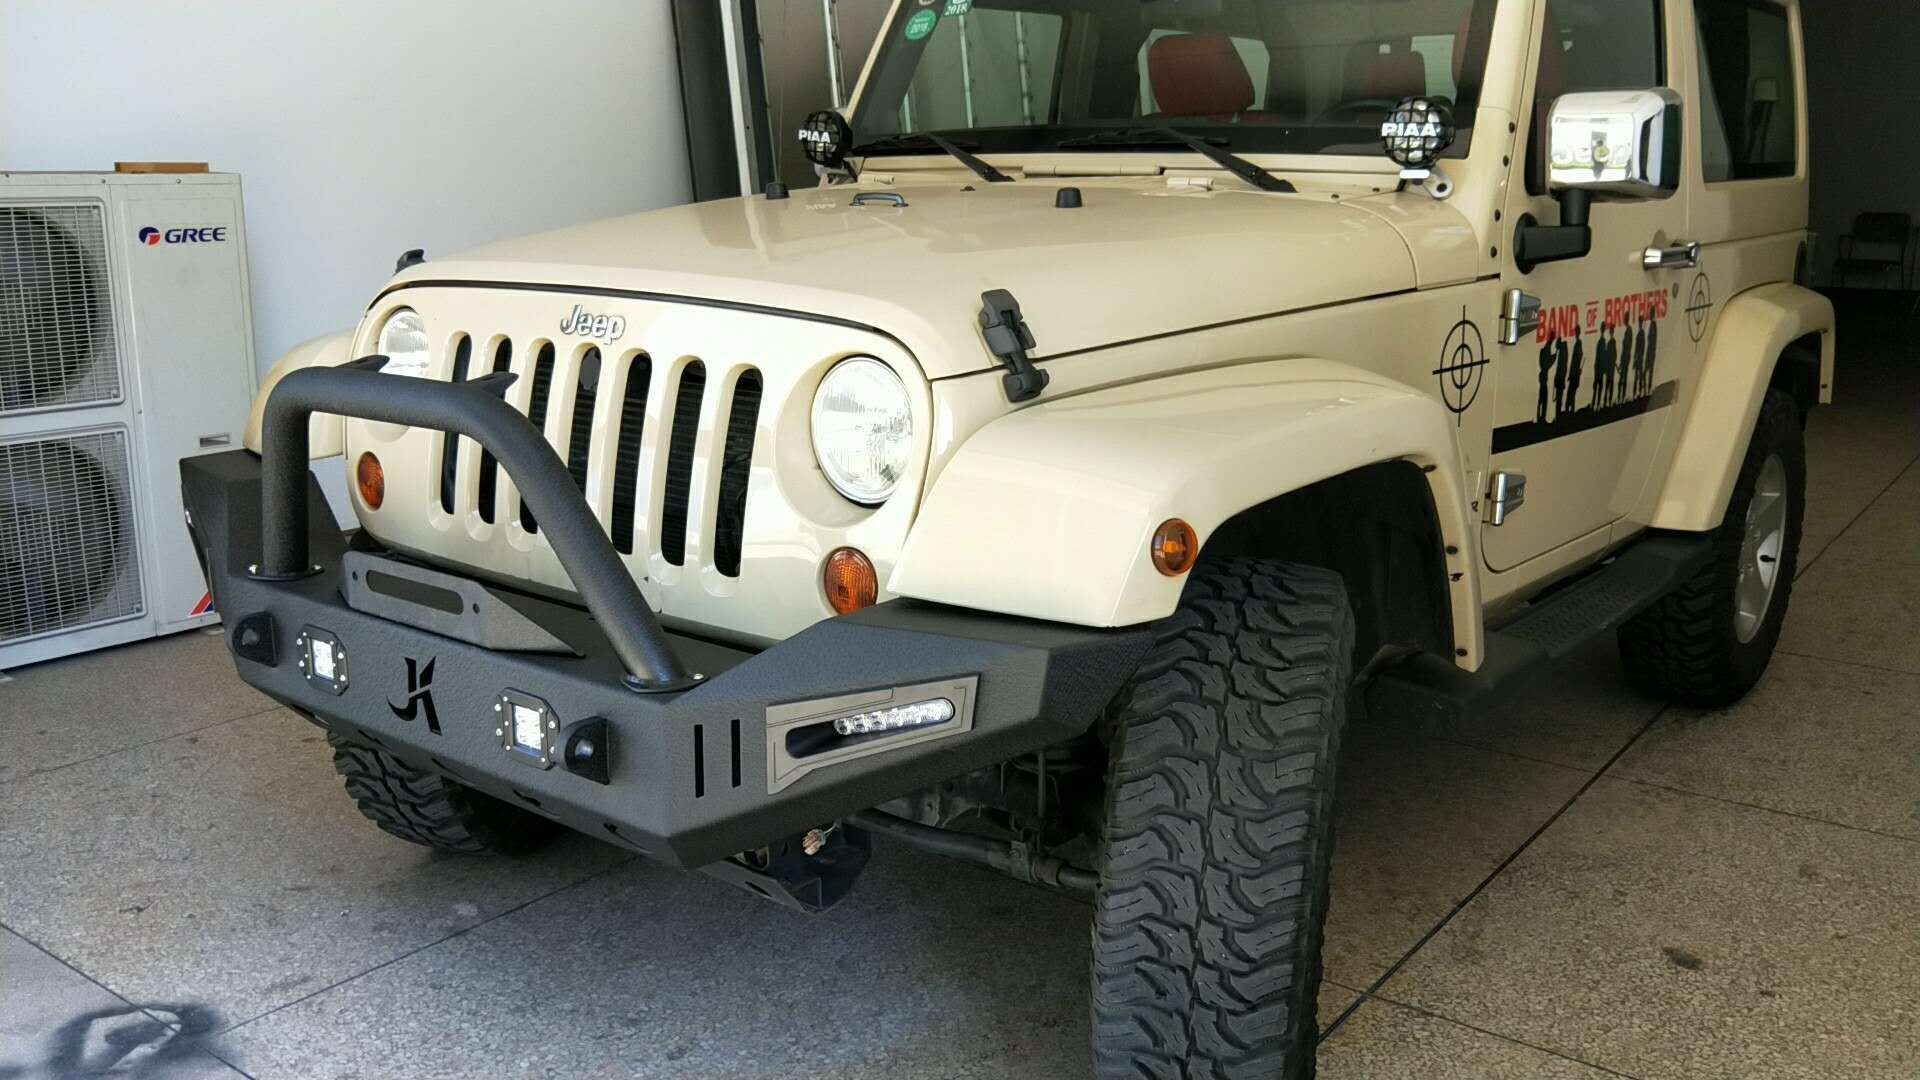 Picture Of A Jk Warehouse Custom Design Front Bull Bar With Led Lights On Special Jeep Wrangler Front Bumper Jeep Wrangler Offroad Accessories